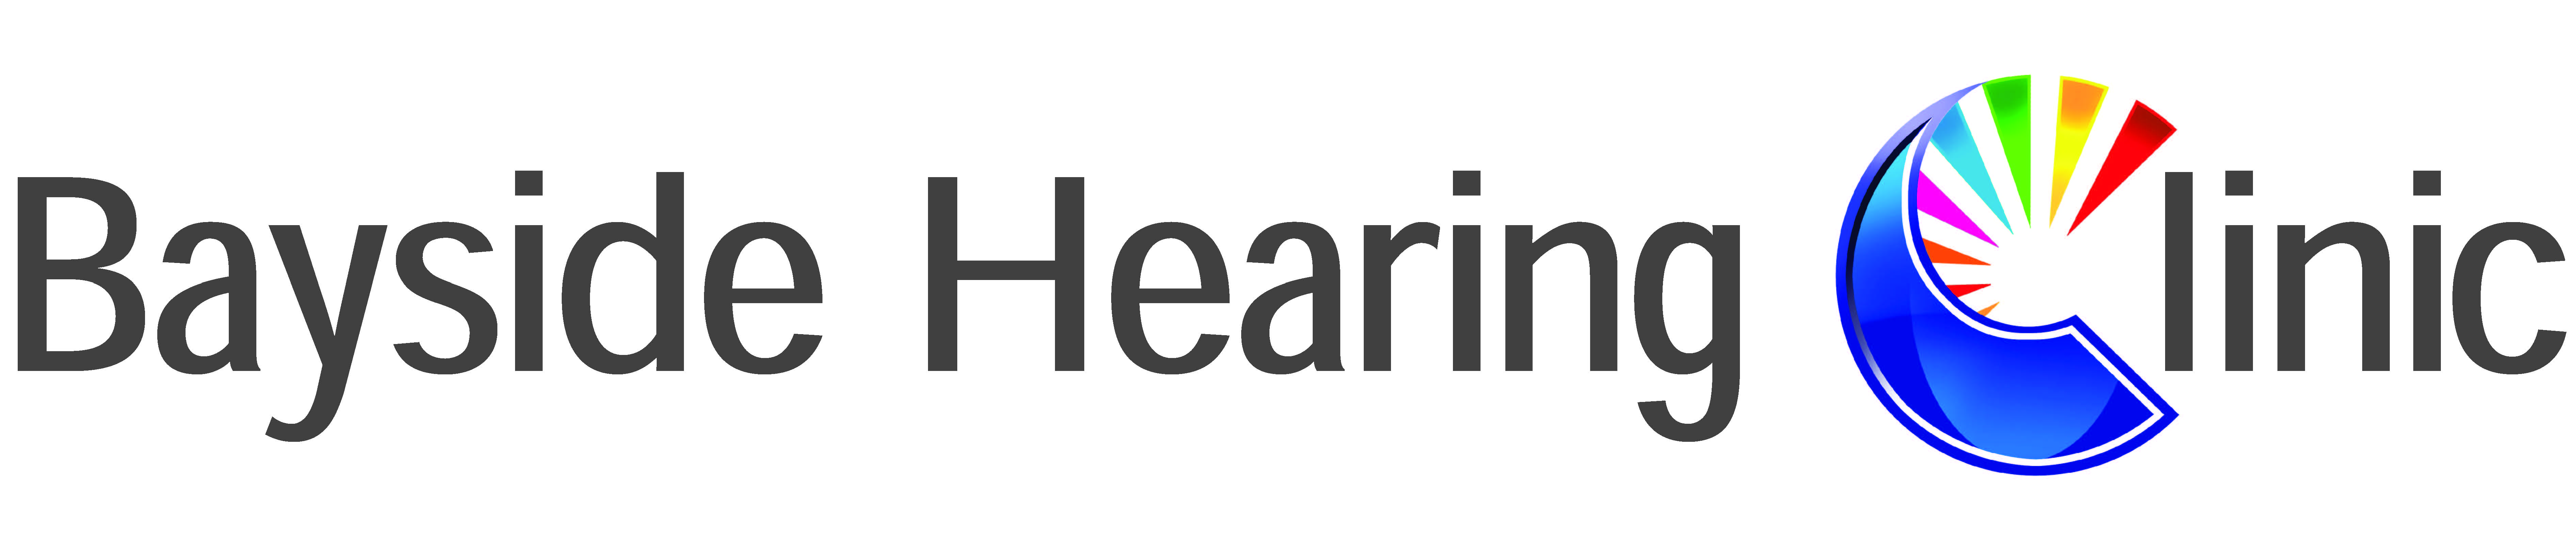 Bayside Hearing Clinic/Hearing Professionals